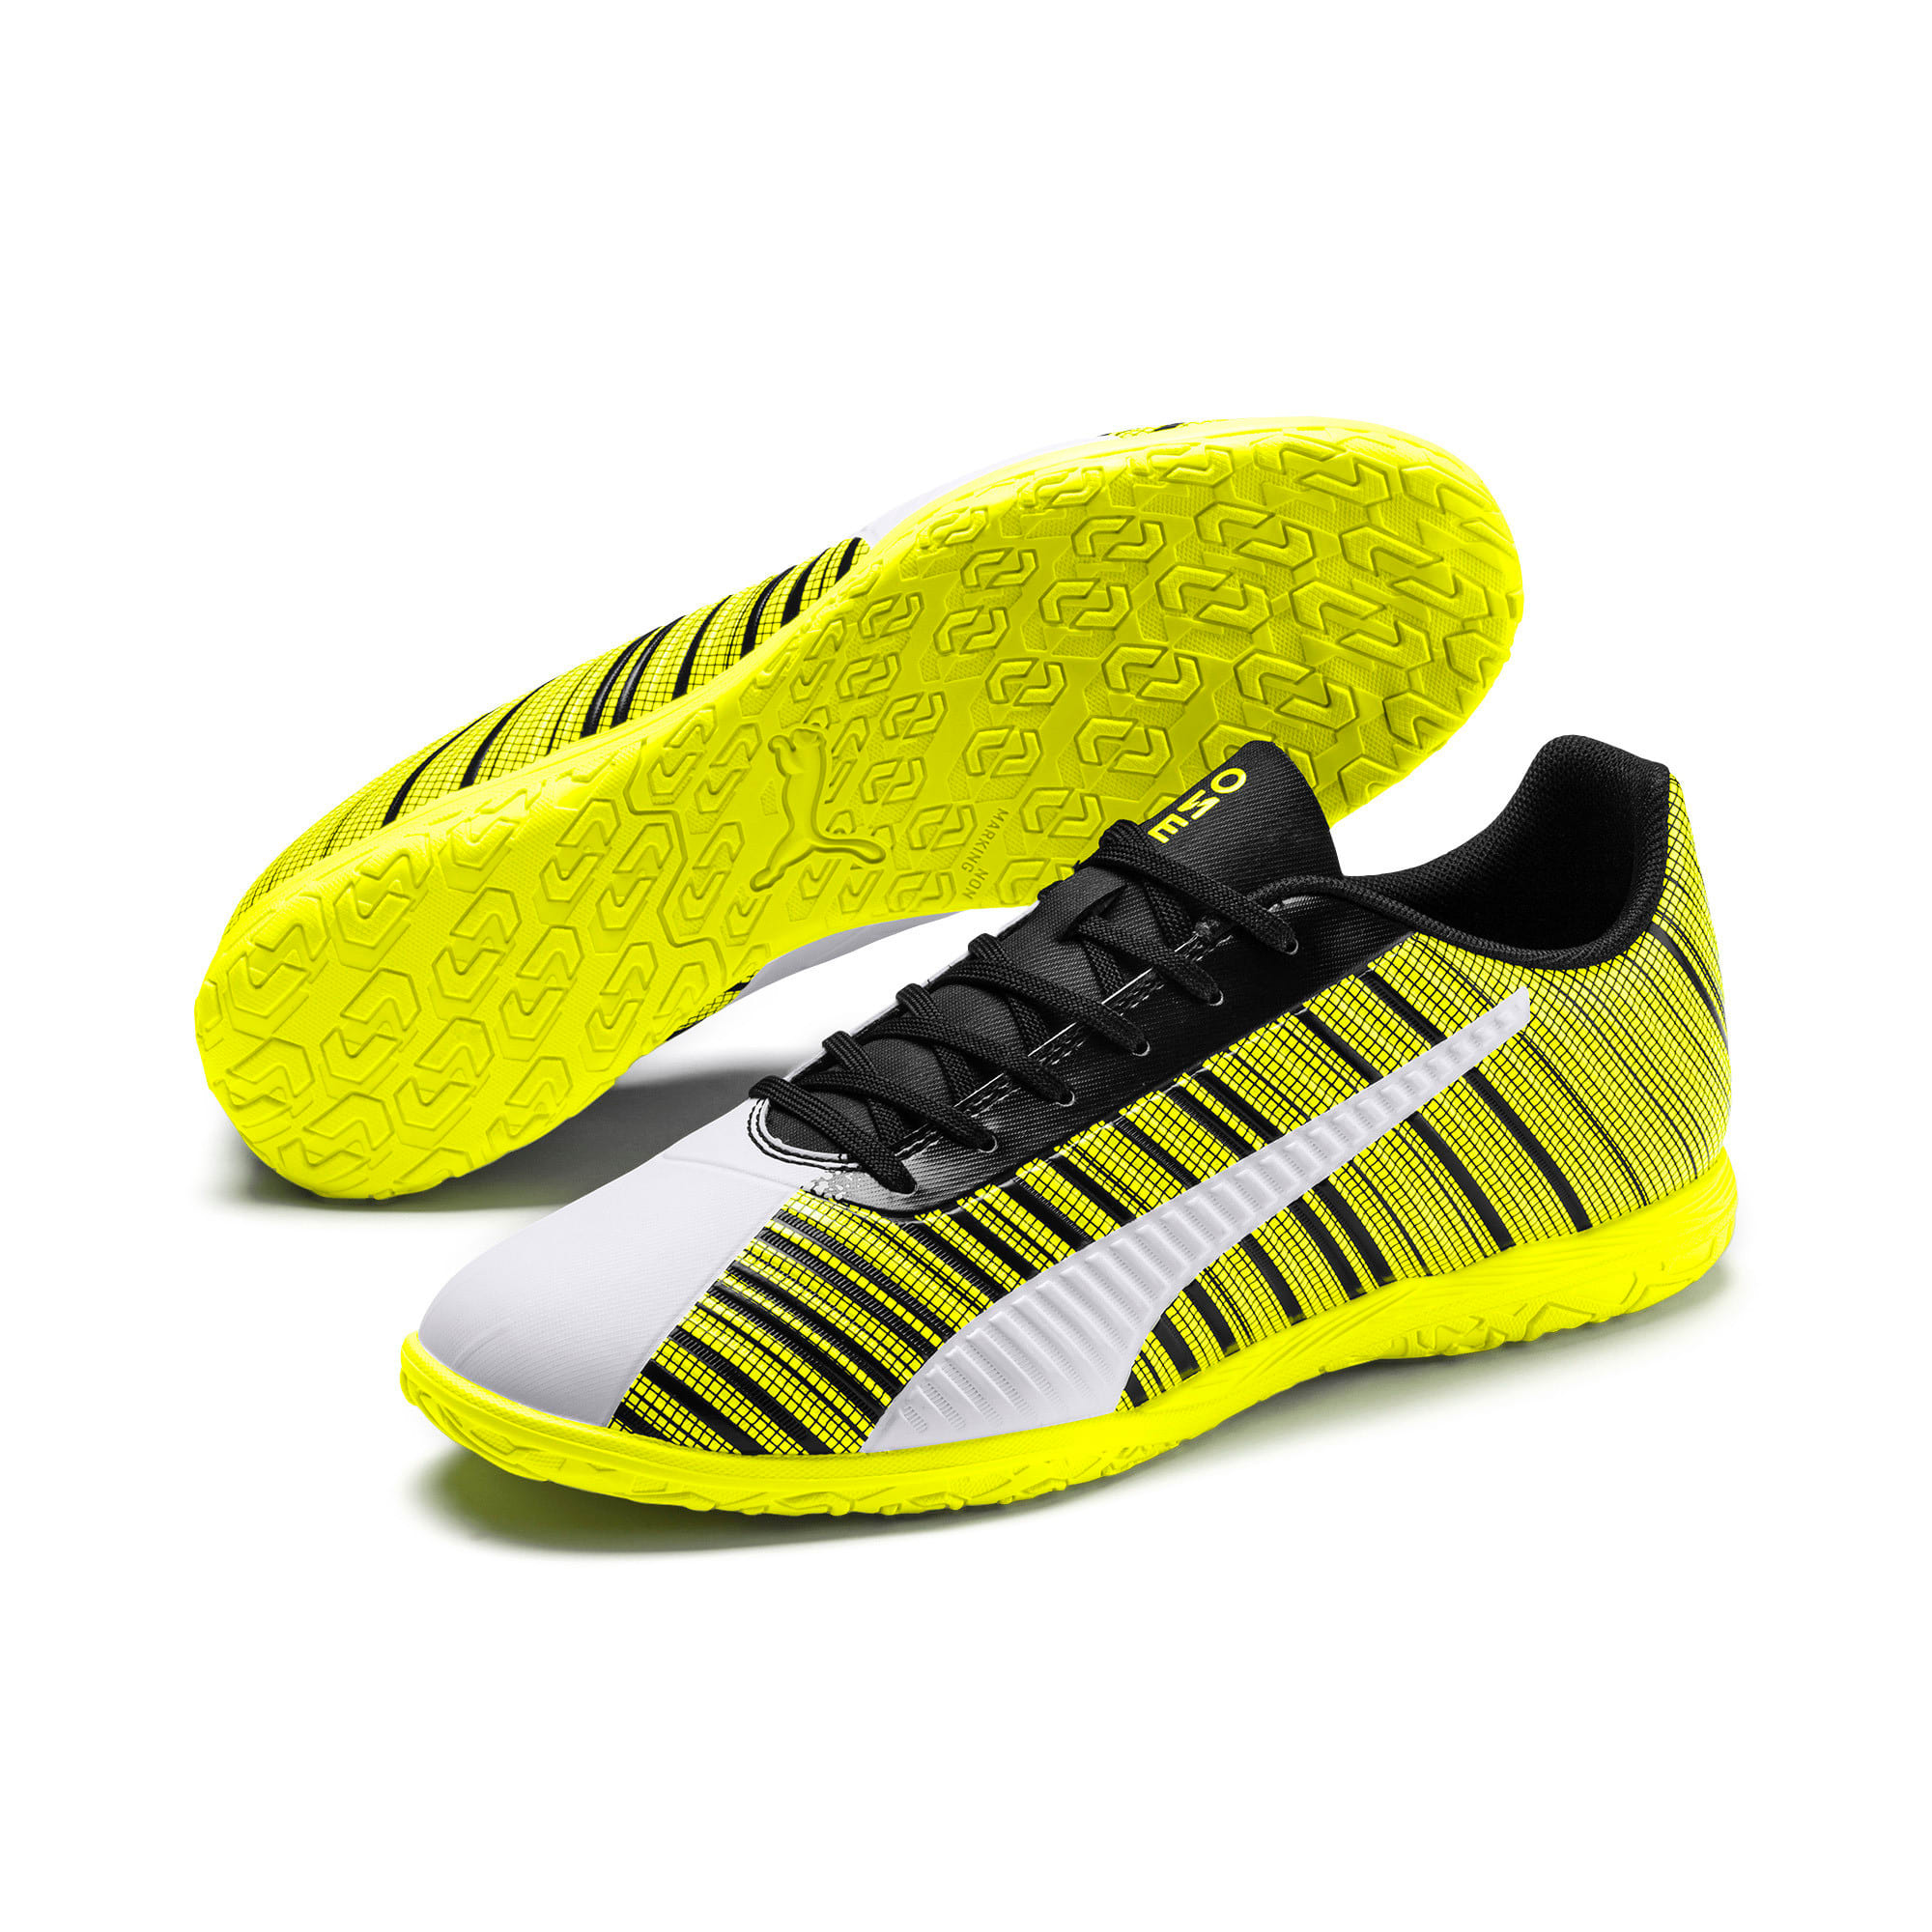 Thumbnail 3 of PUMA ONE 5.4 IT Men's Football Boots, White-Black-Yellow Alert, medium